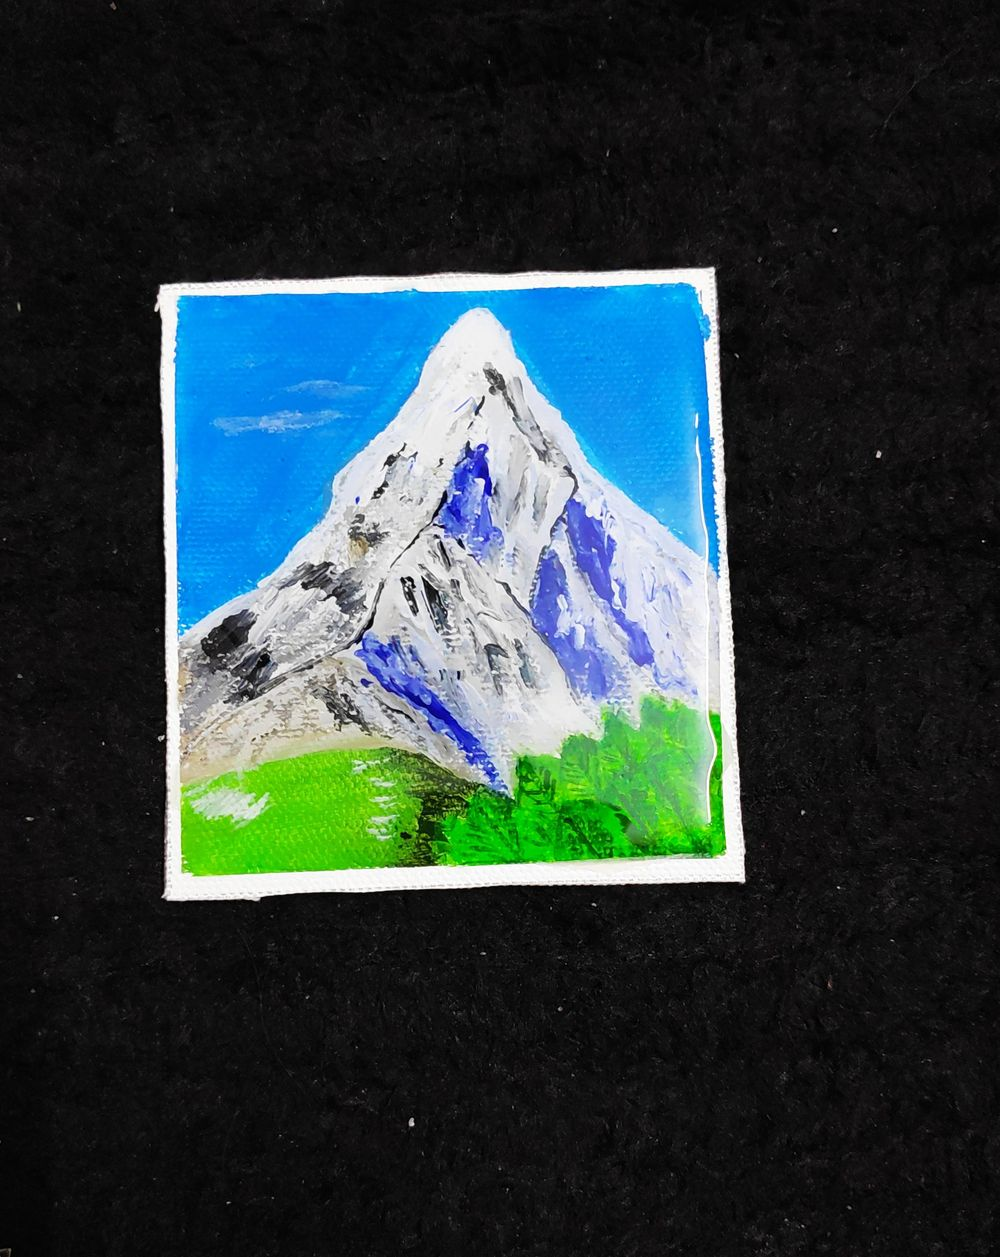 Four Beautiful Landscape Painting - image 2 - student project